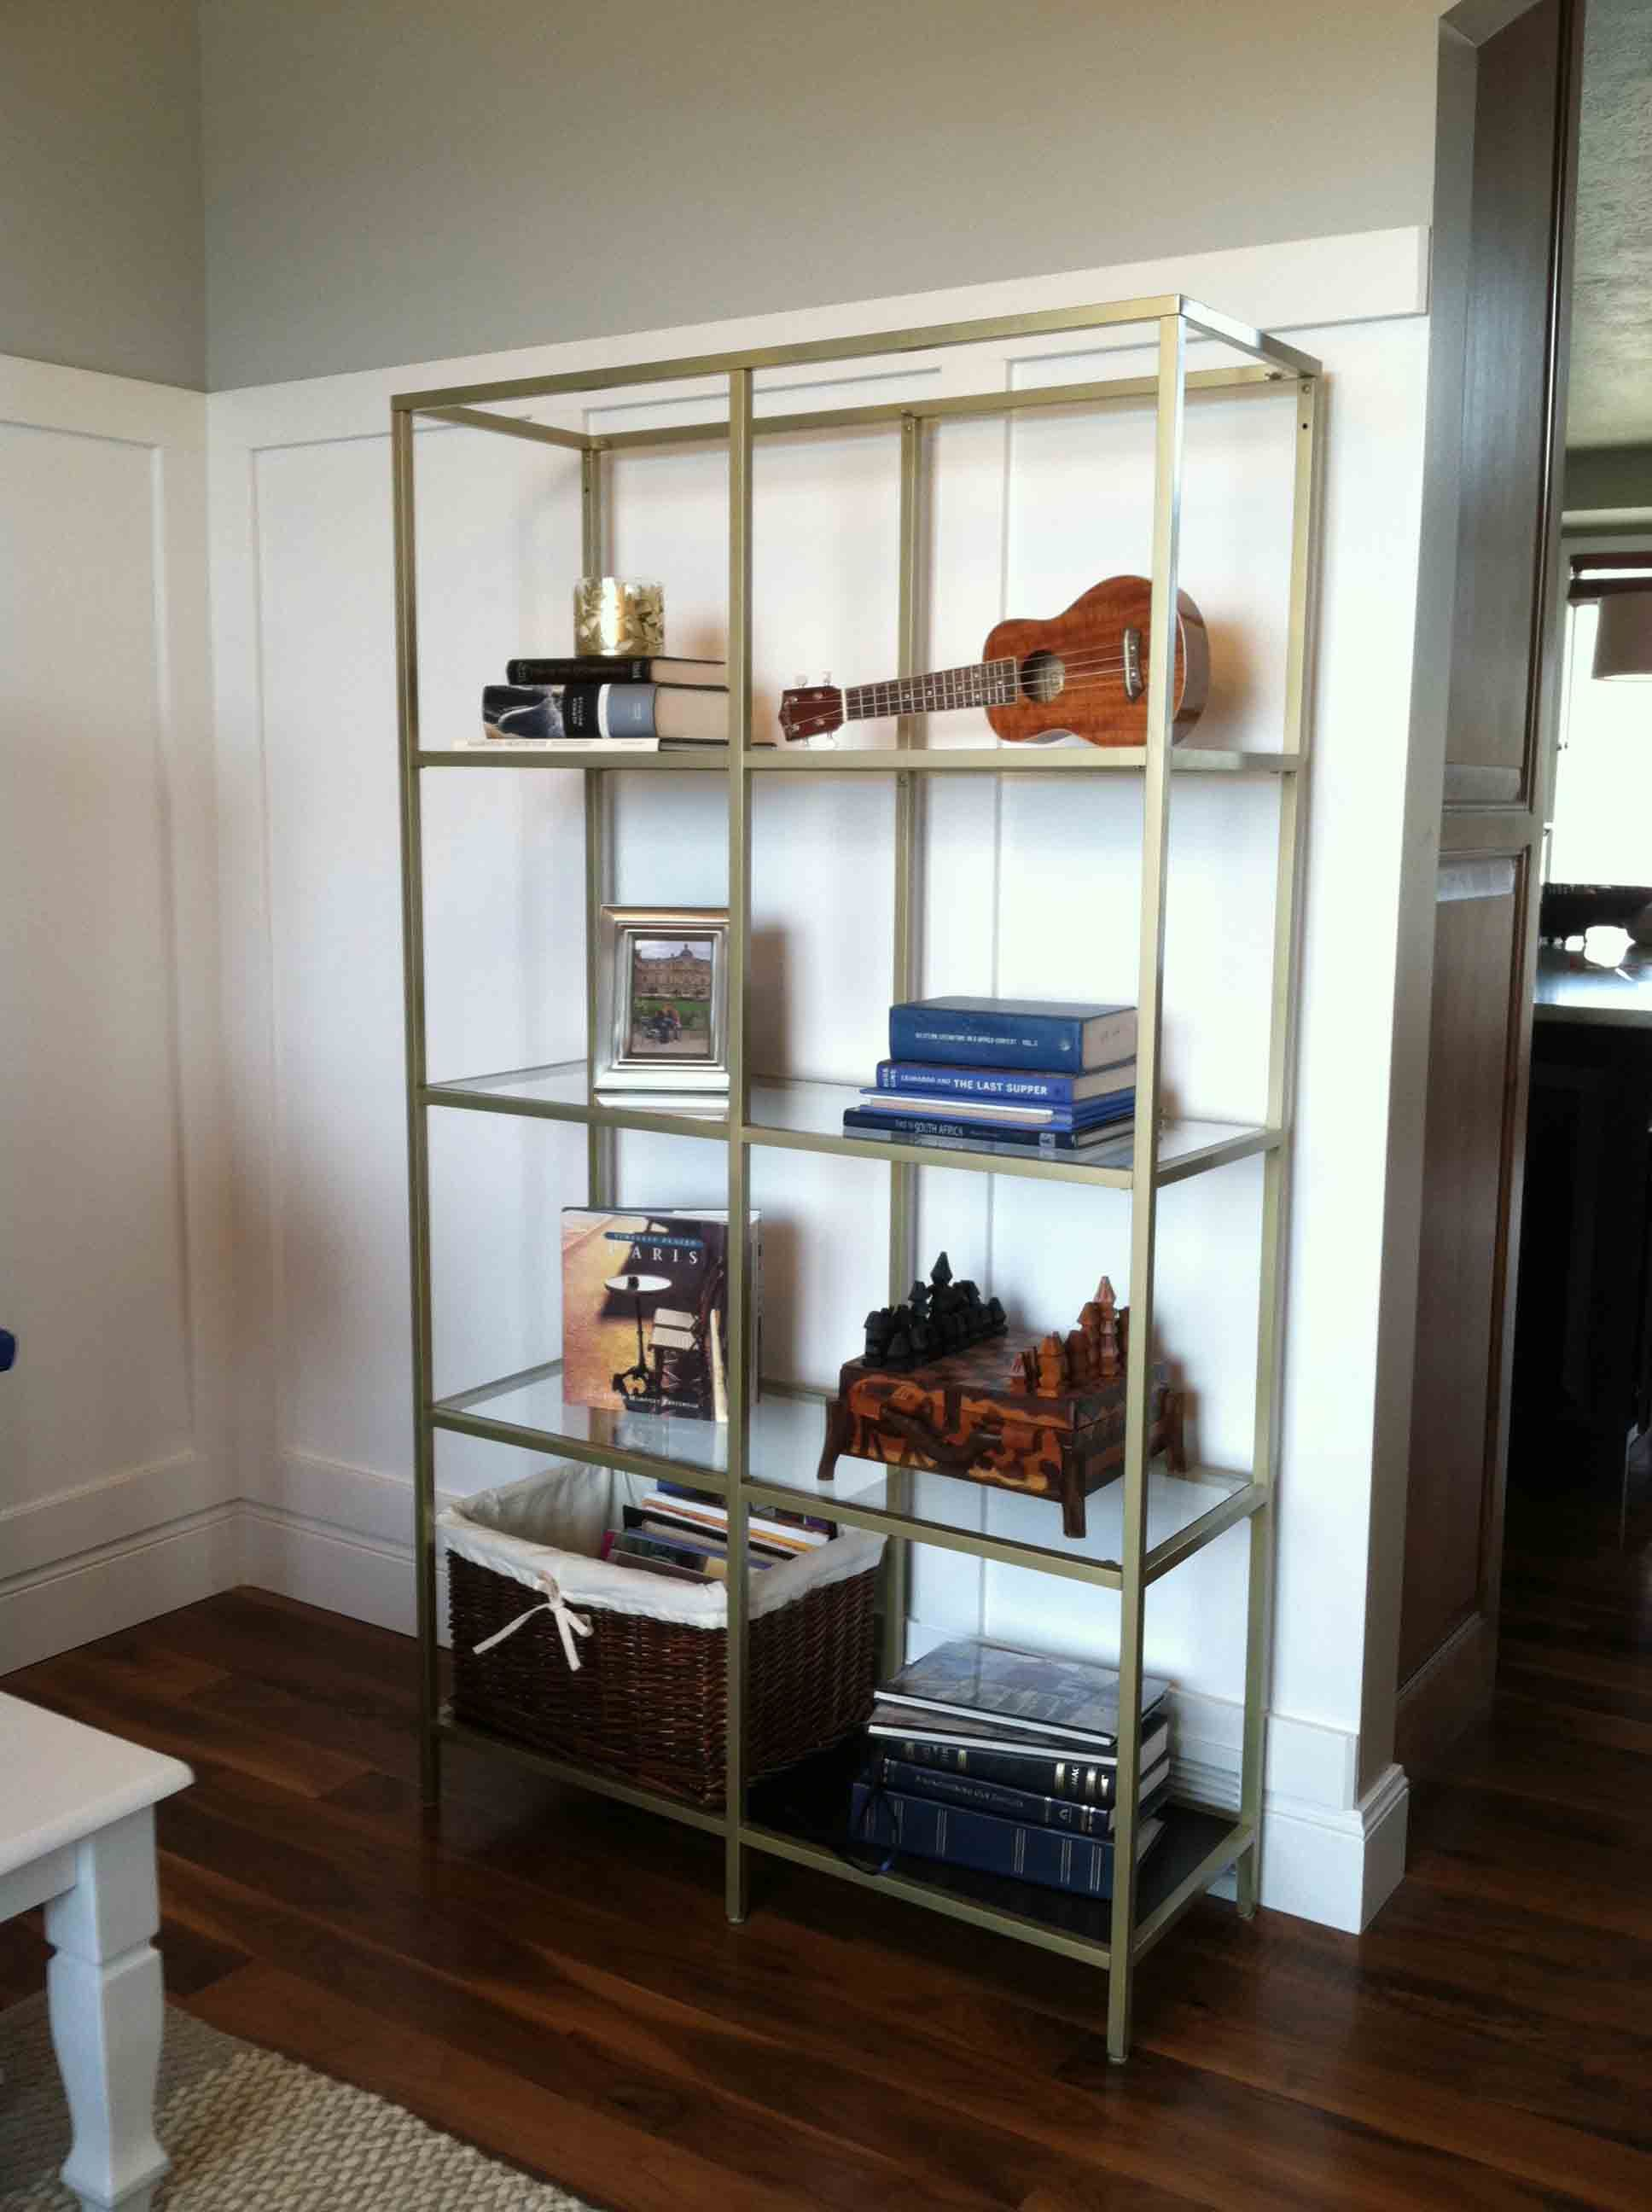 can chrome great glass wood and alternative shelves unit rectangular design be with idea pin for bookshelf dividers also room shape shelving